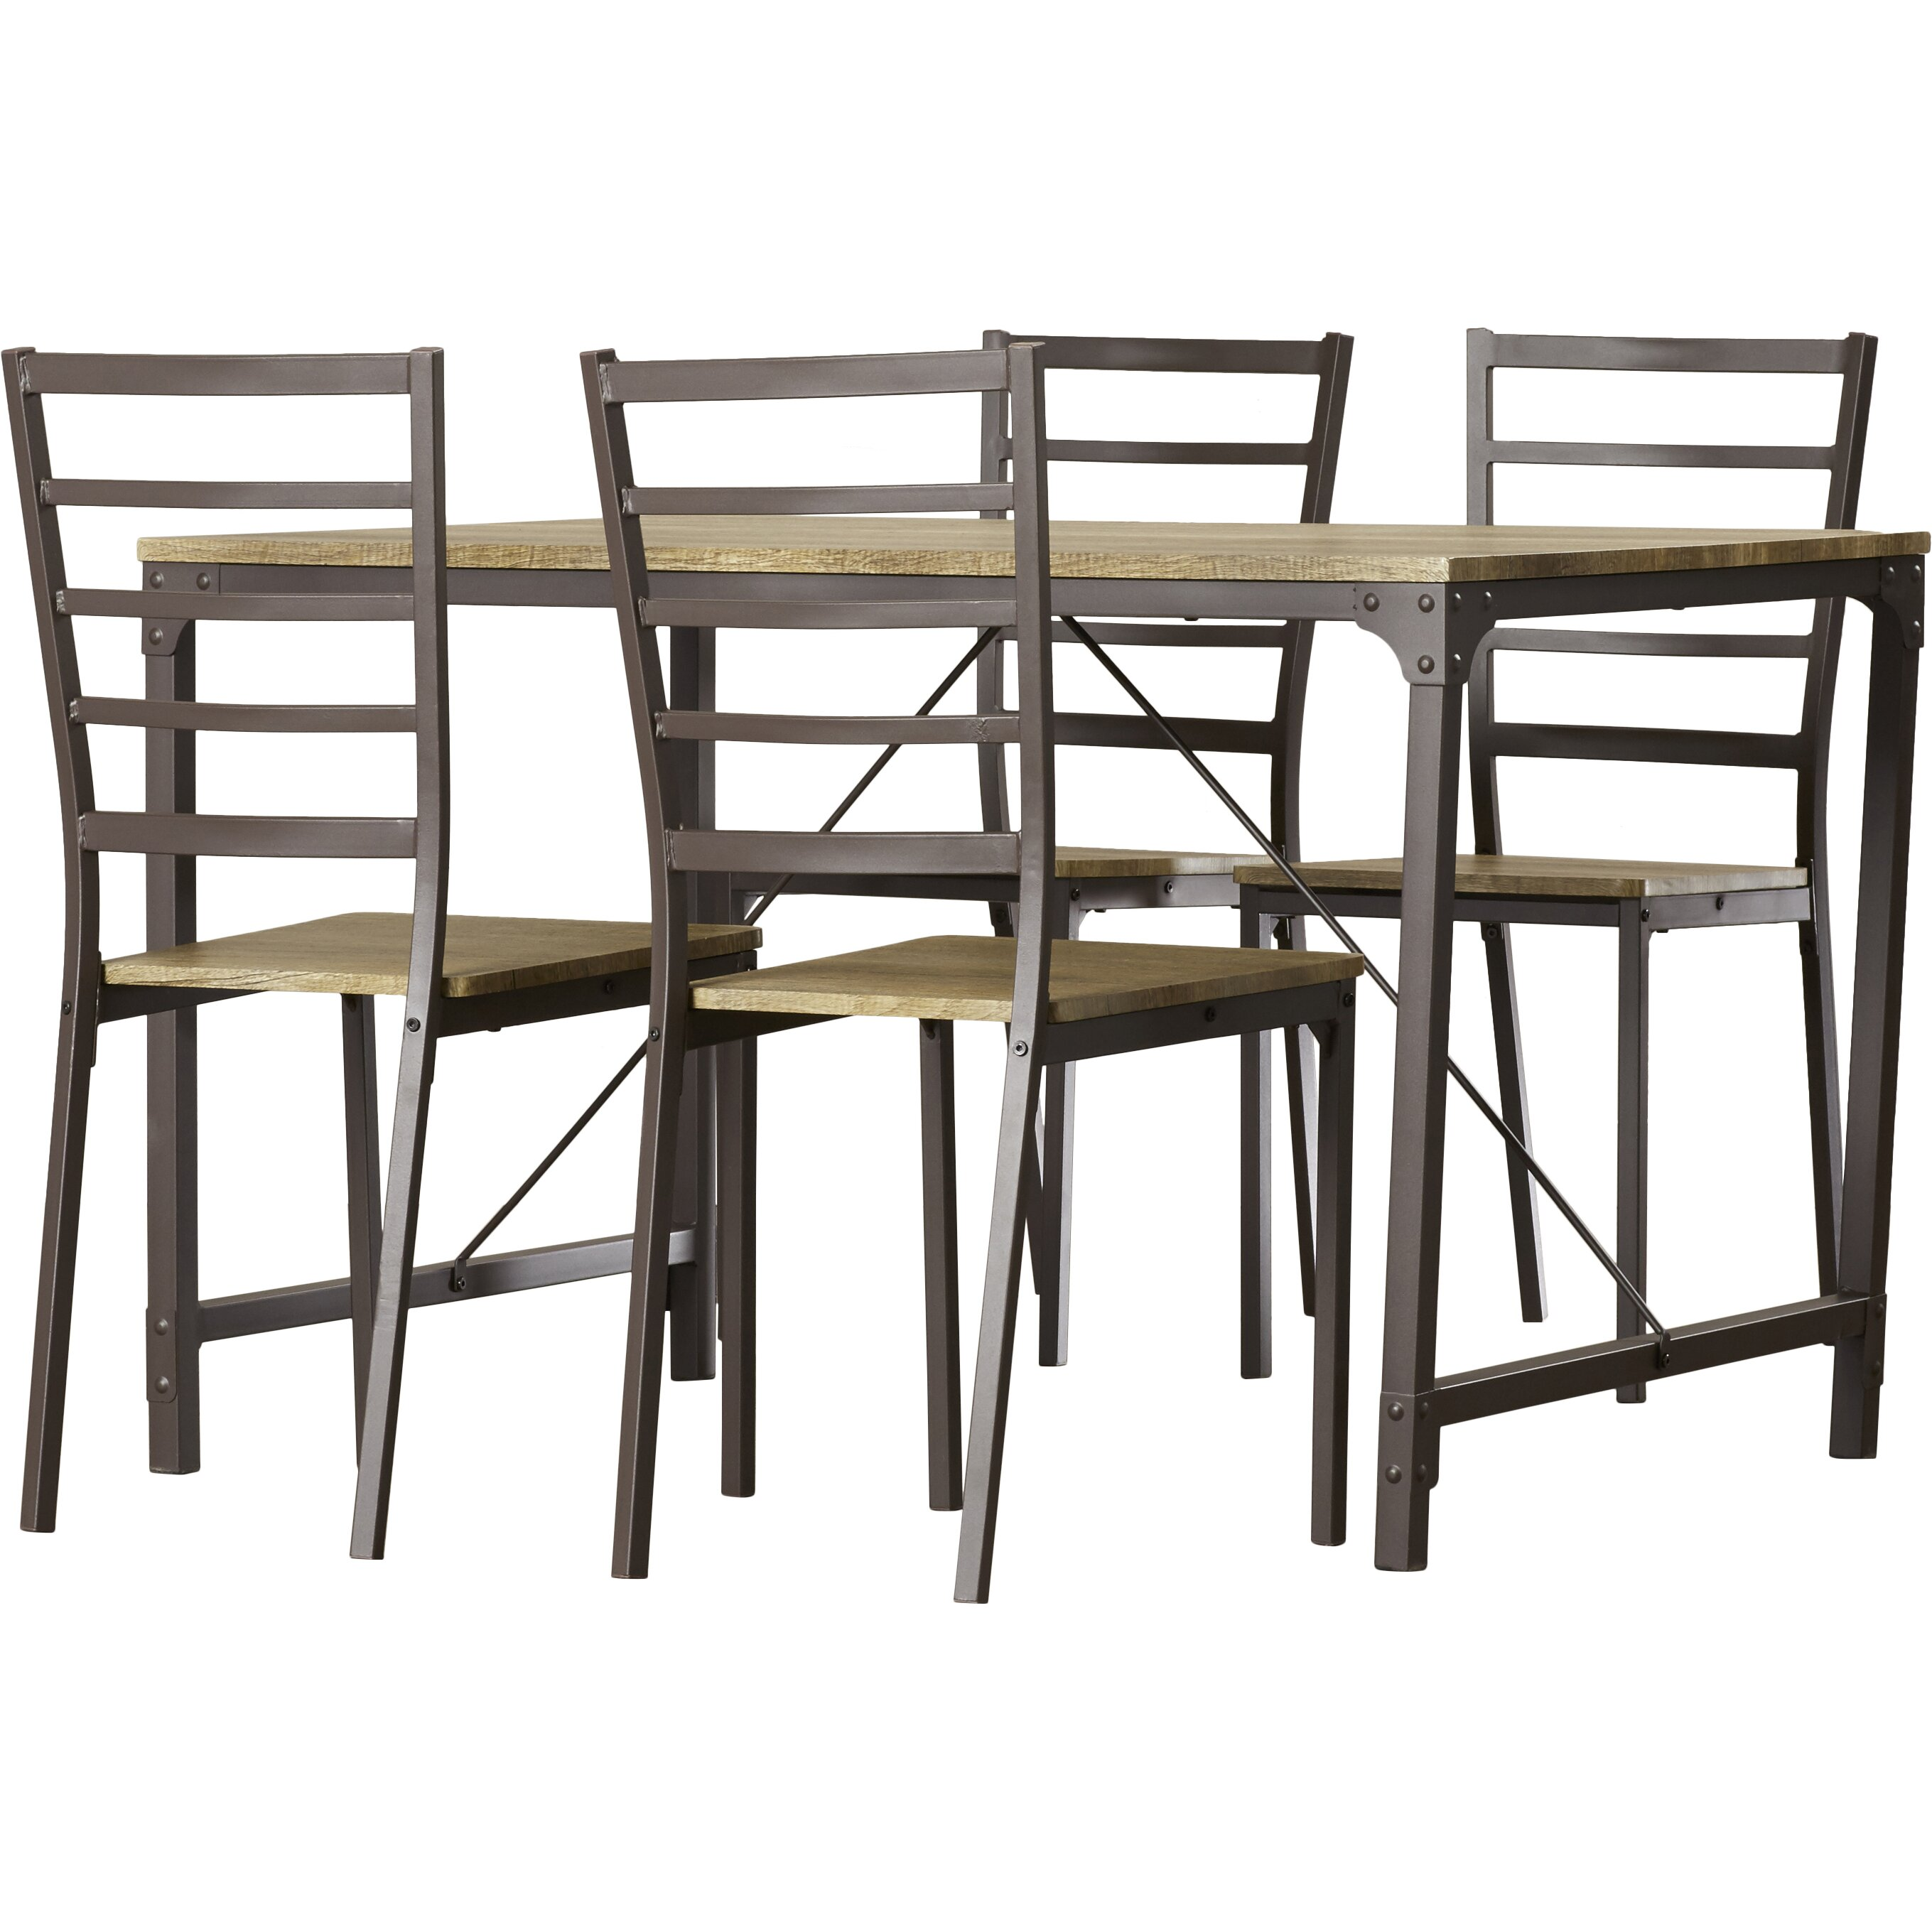 Trent austin design bismark 5 piece dining set reviews wayfair - Dining room sets austin tx ...